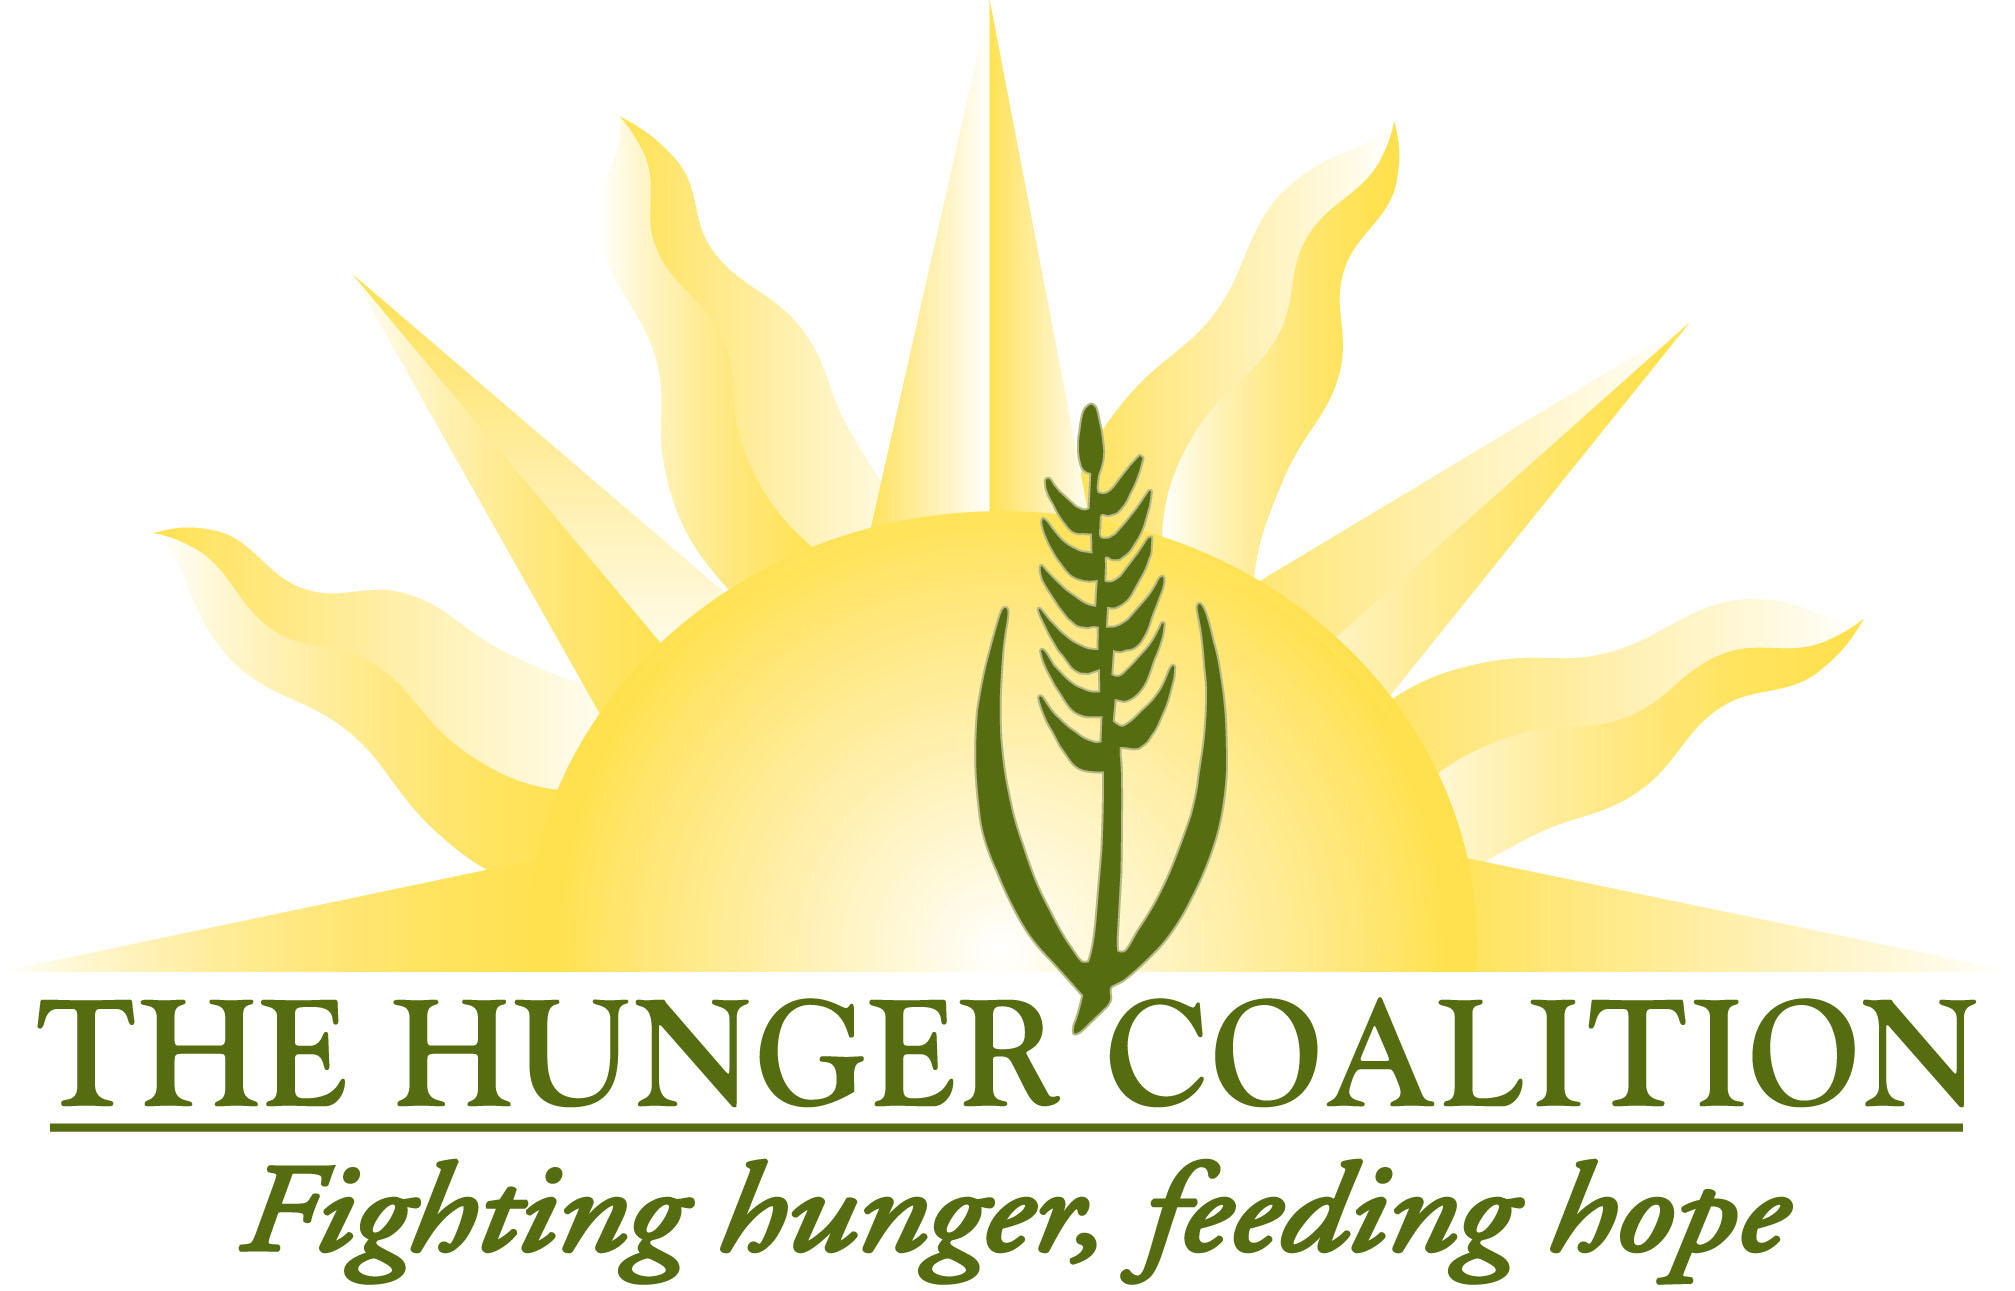 The Hunger Coalition (Blaine County)